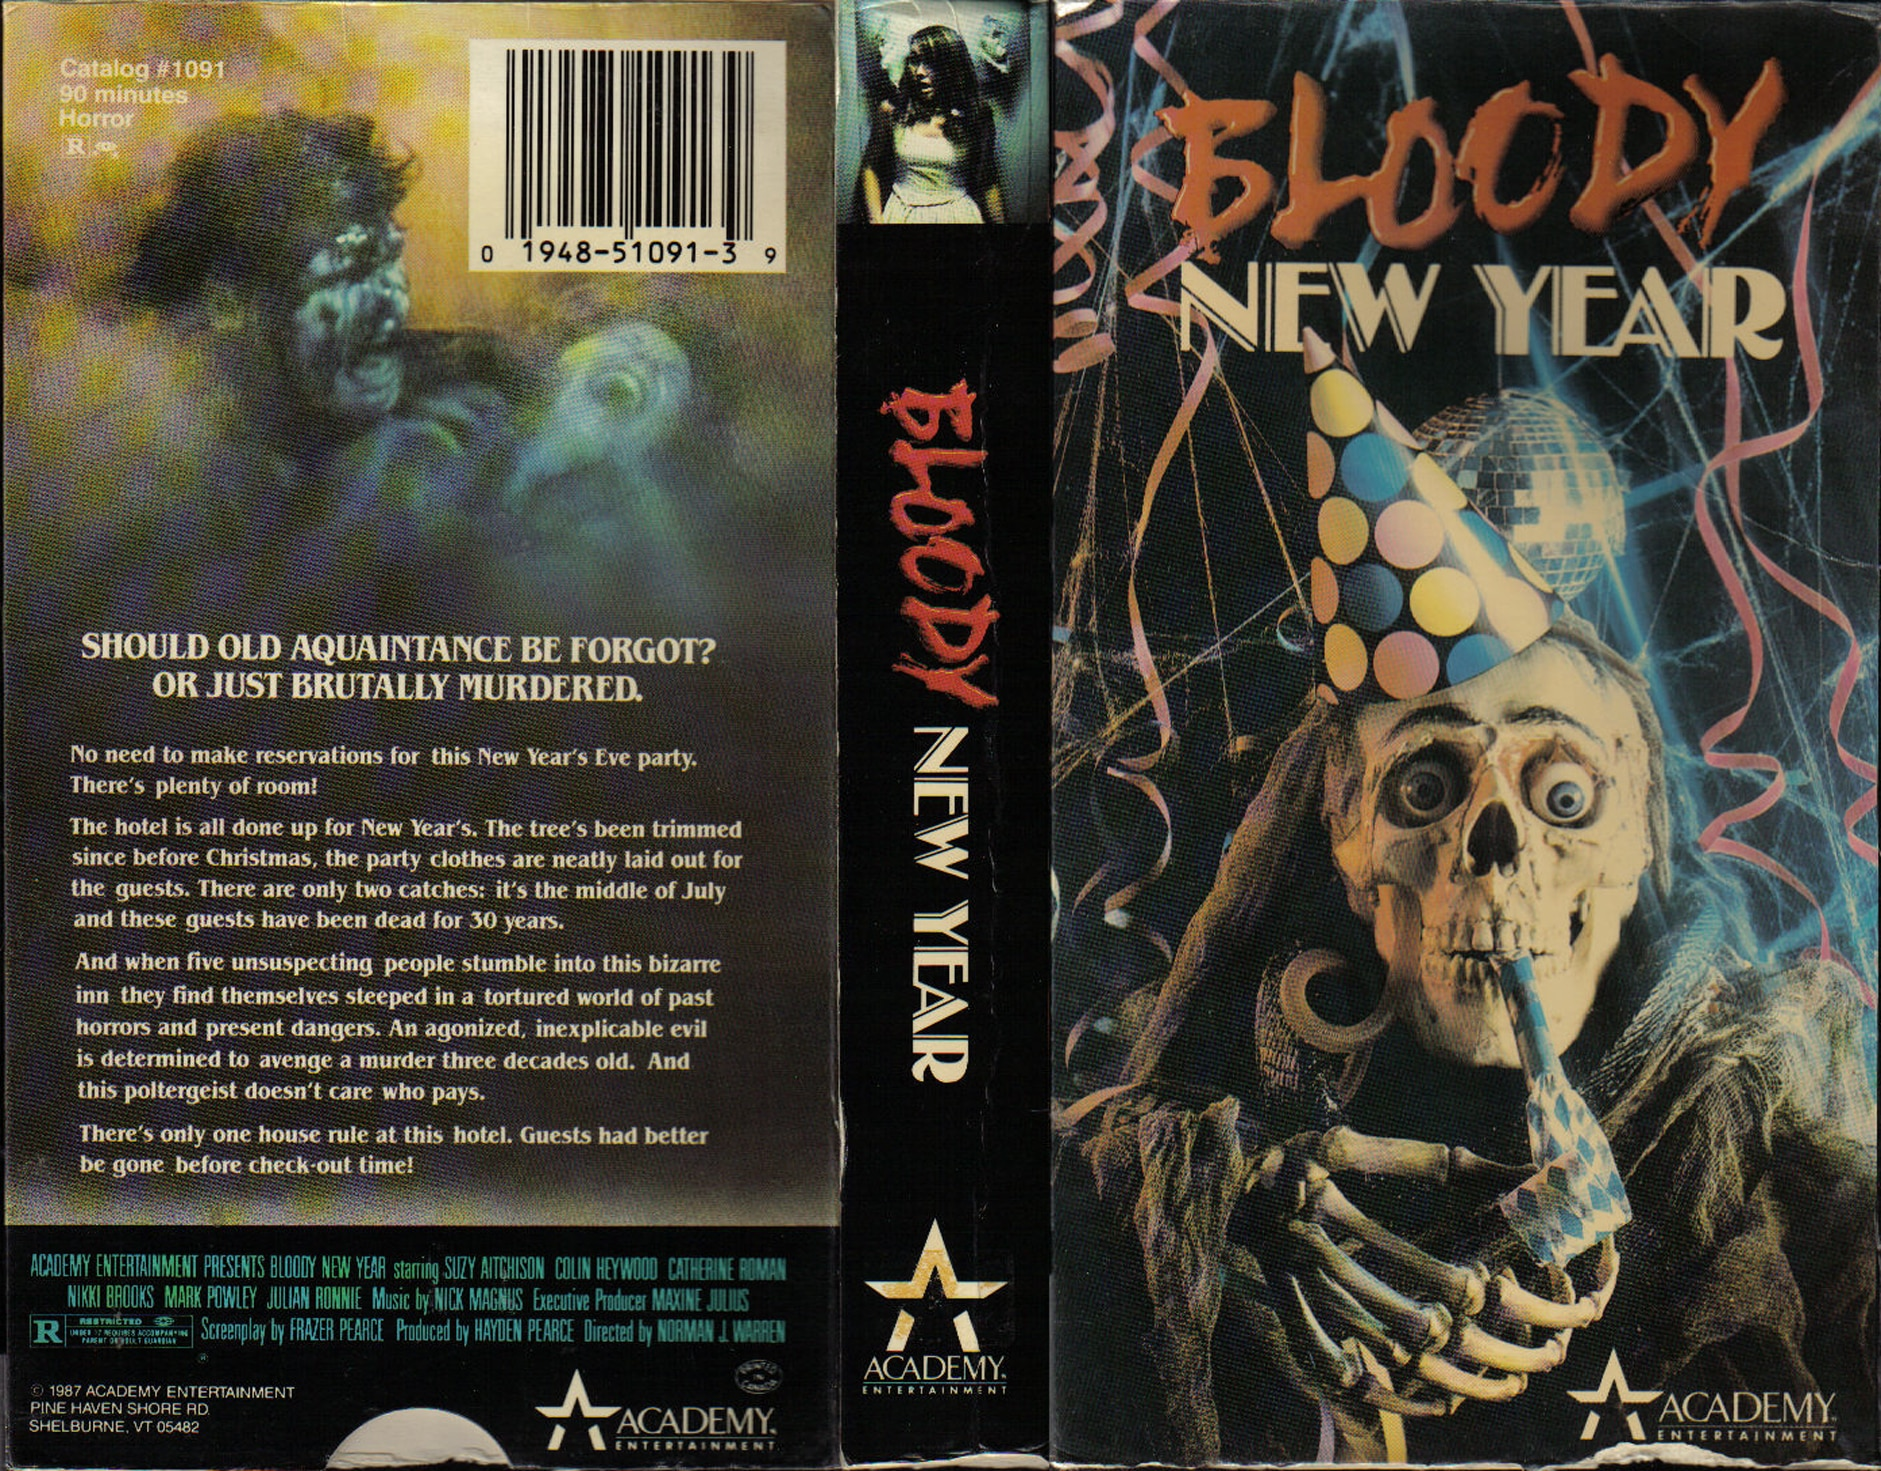 BLOODY NEW YEAR - 5 Films to Satisfy Your New Year's Eve Horror Needs